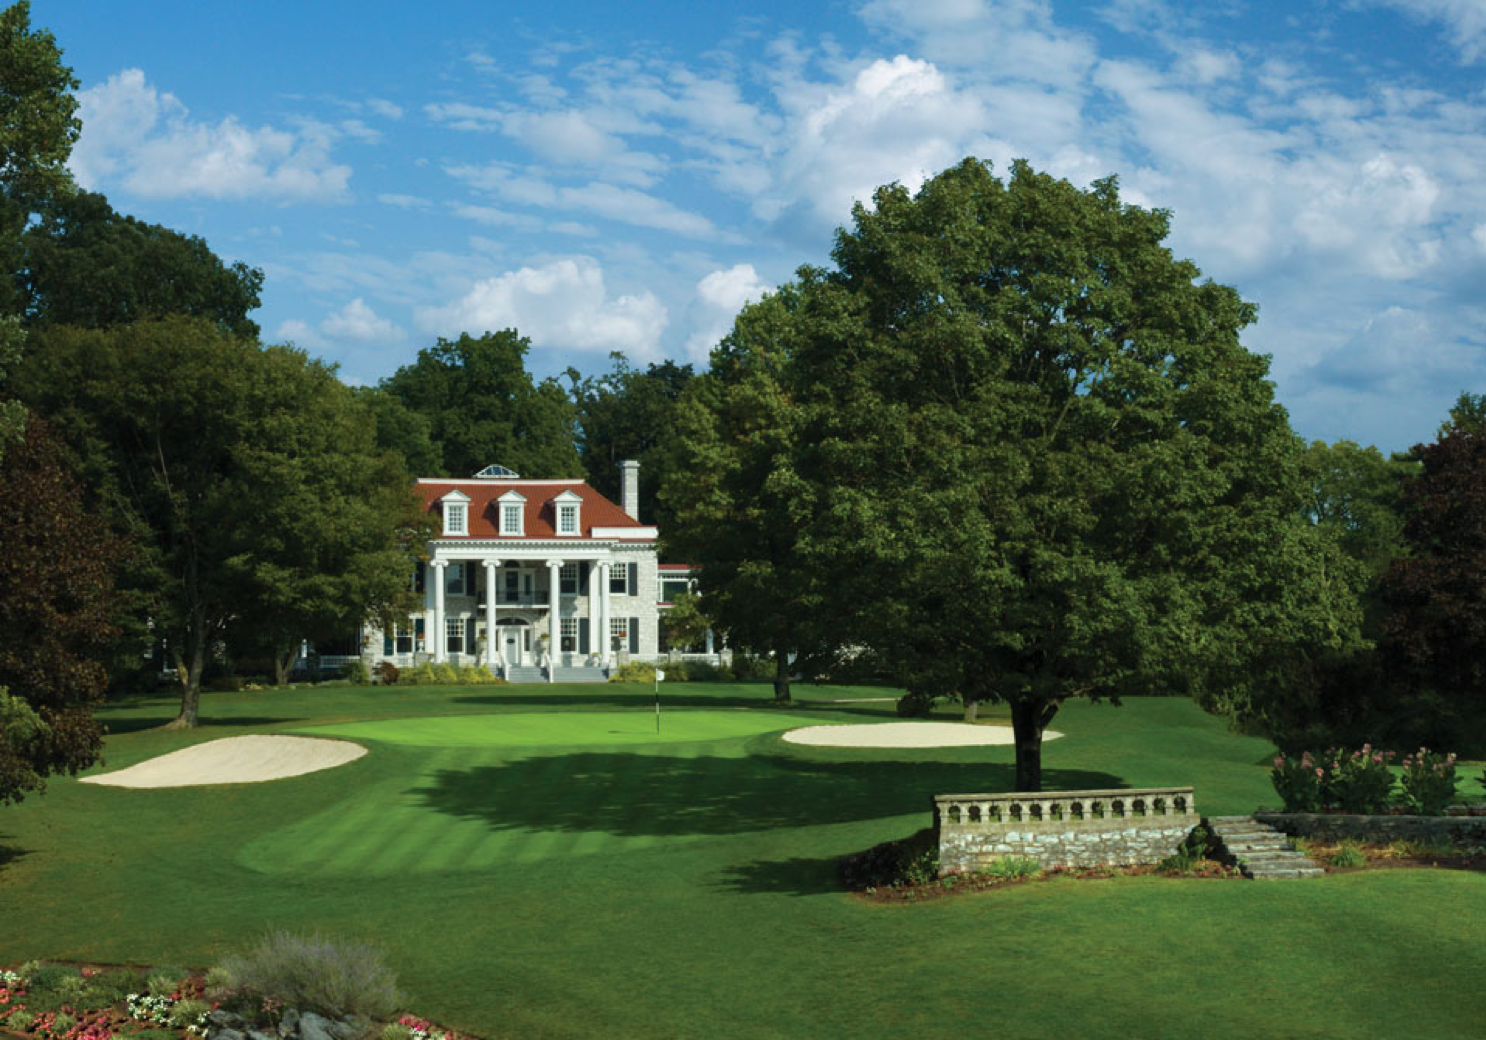 """Milton Hershey's """"High Point"""" mansion with golf course in foreground"""